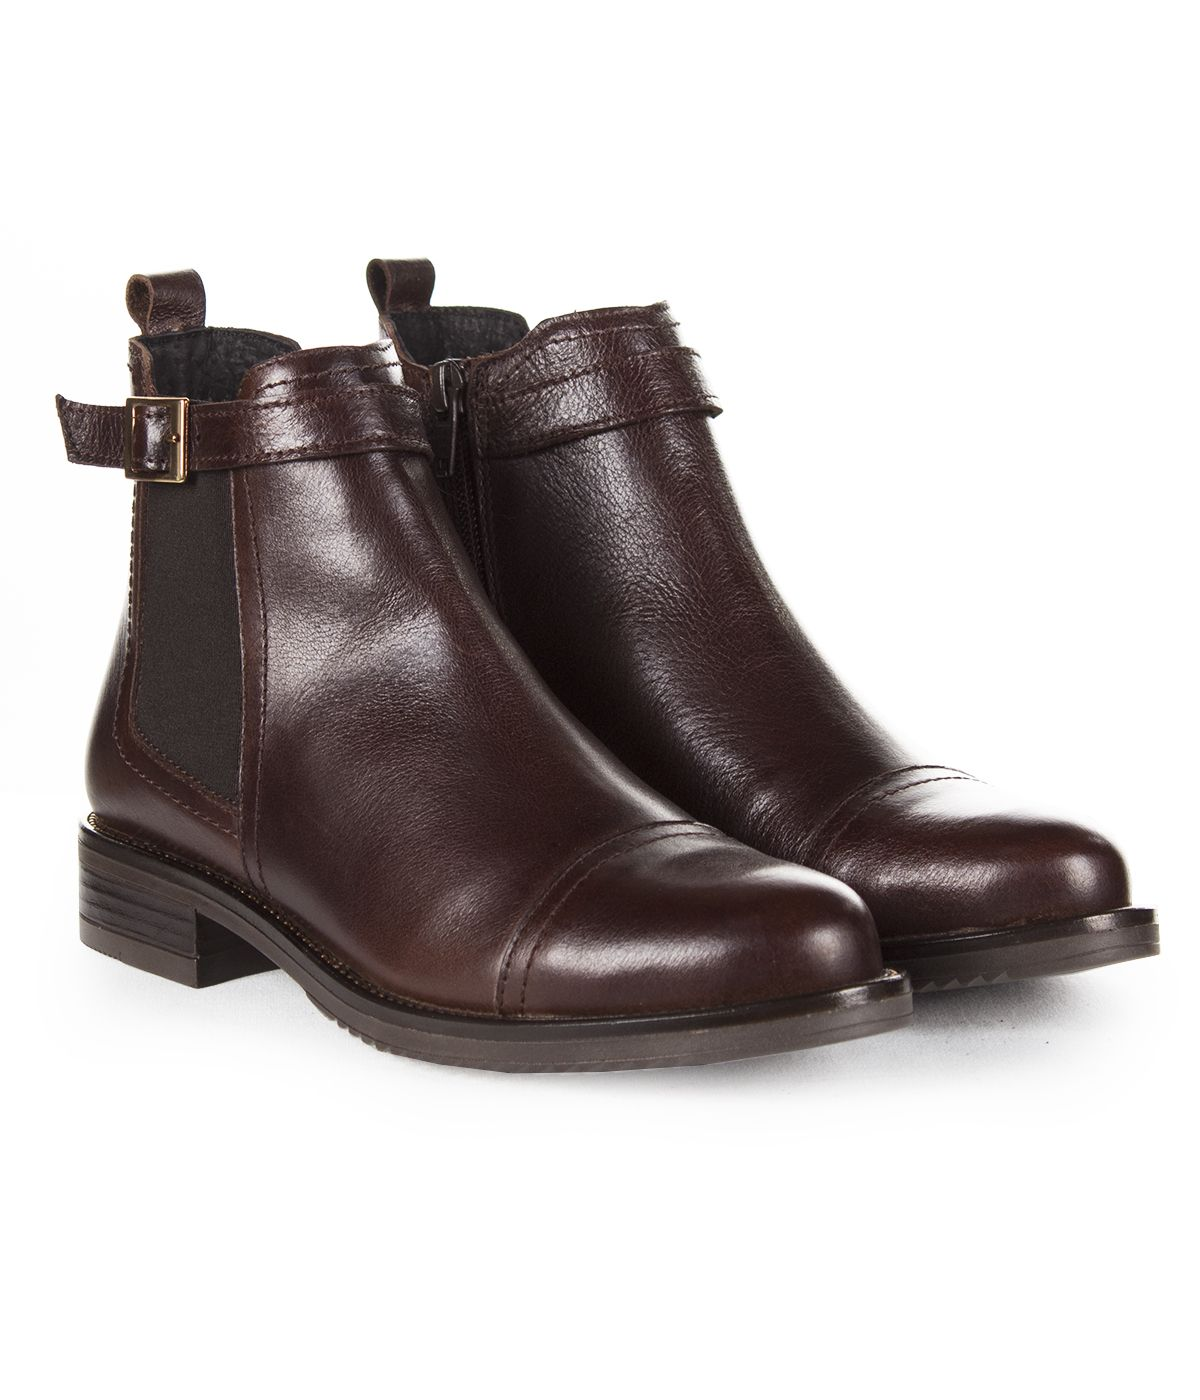 BROWN LEATHER ANKLE BOOTS 1